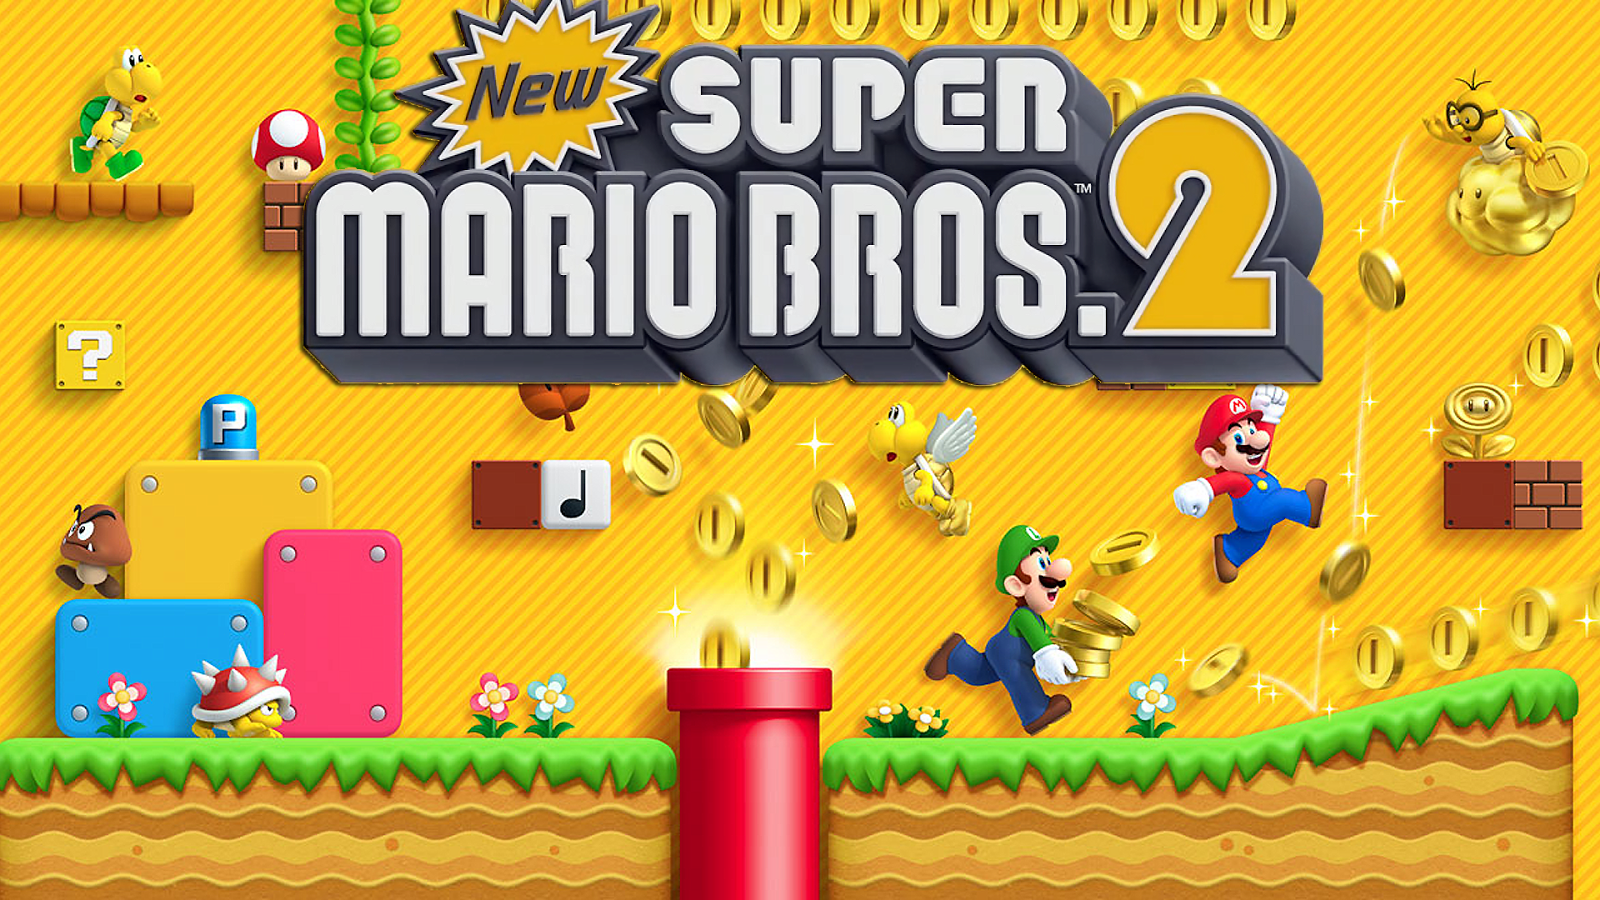 superphillip central rank up 2d mario 2013 edition. Black Bedroom Furniture Sets. Home Design Ideas